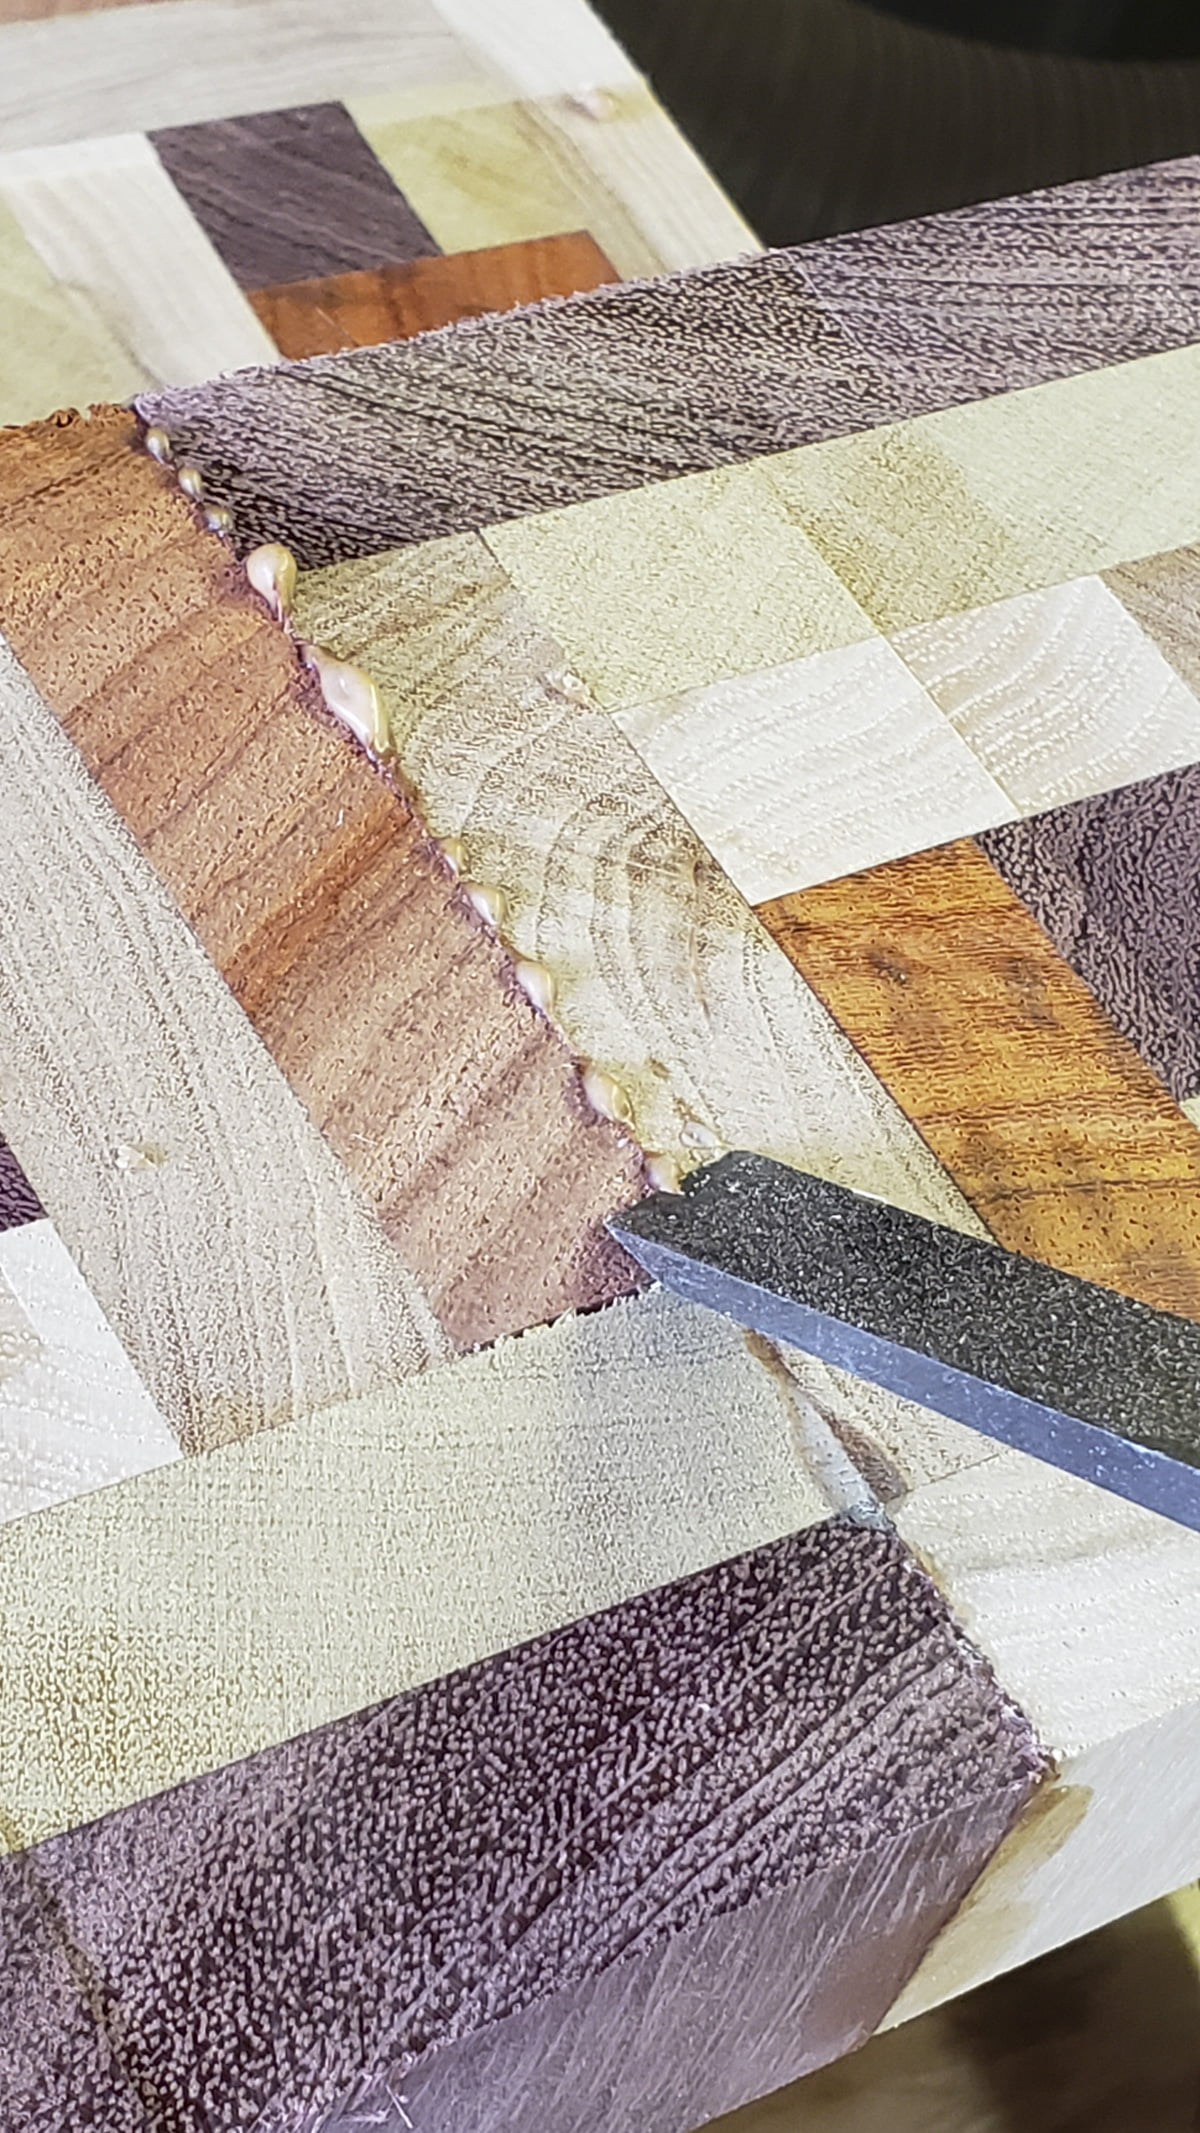 An array of small multi-colored pieces of wood are seen as a flat surface. Glue has bulged out of the seam between two boards. A chisel is on top. The chisel has removed some of the excess glue.